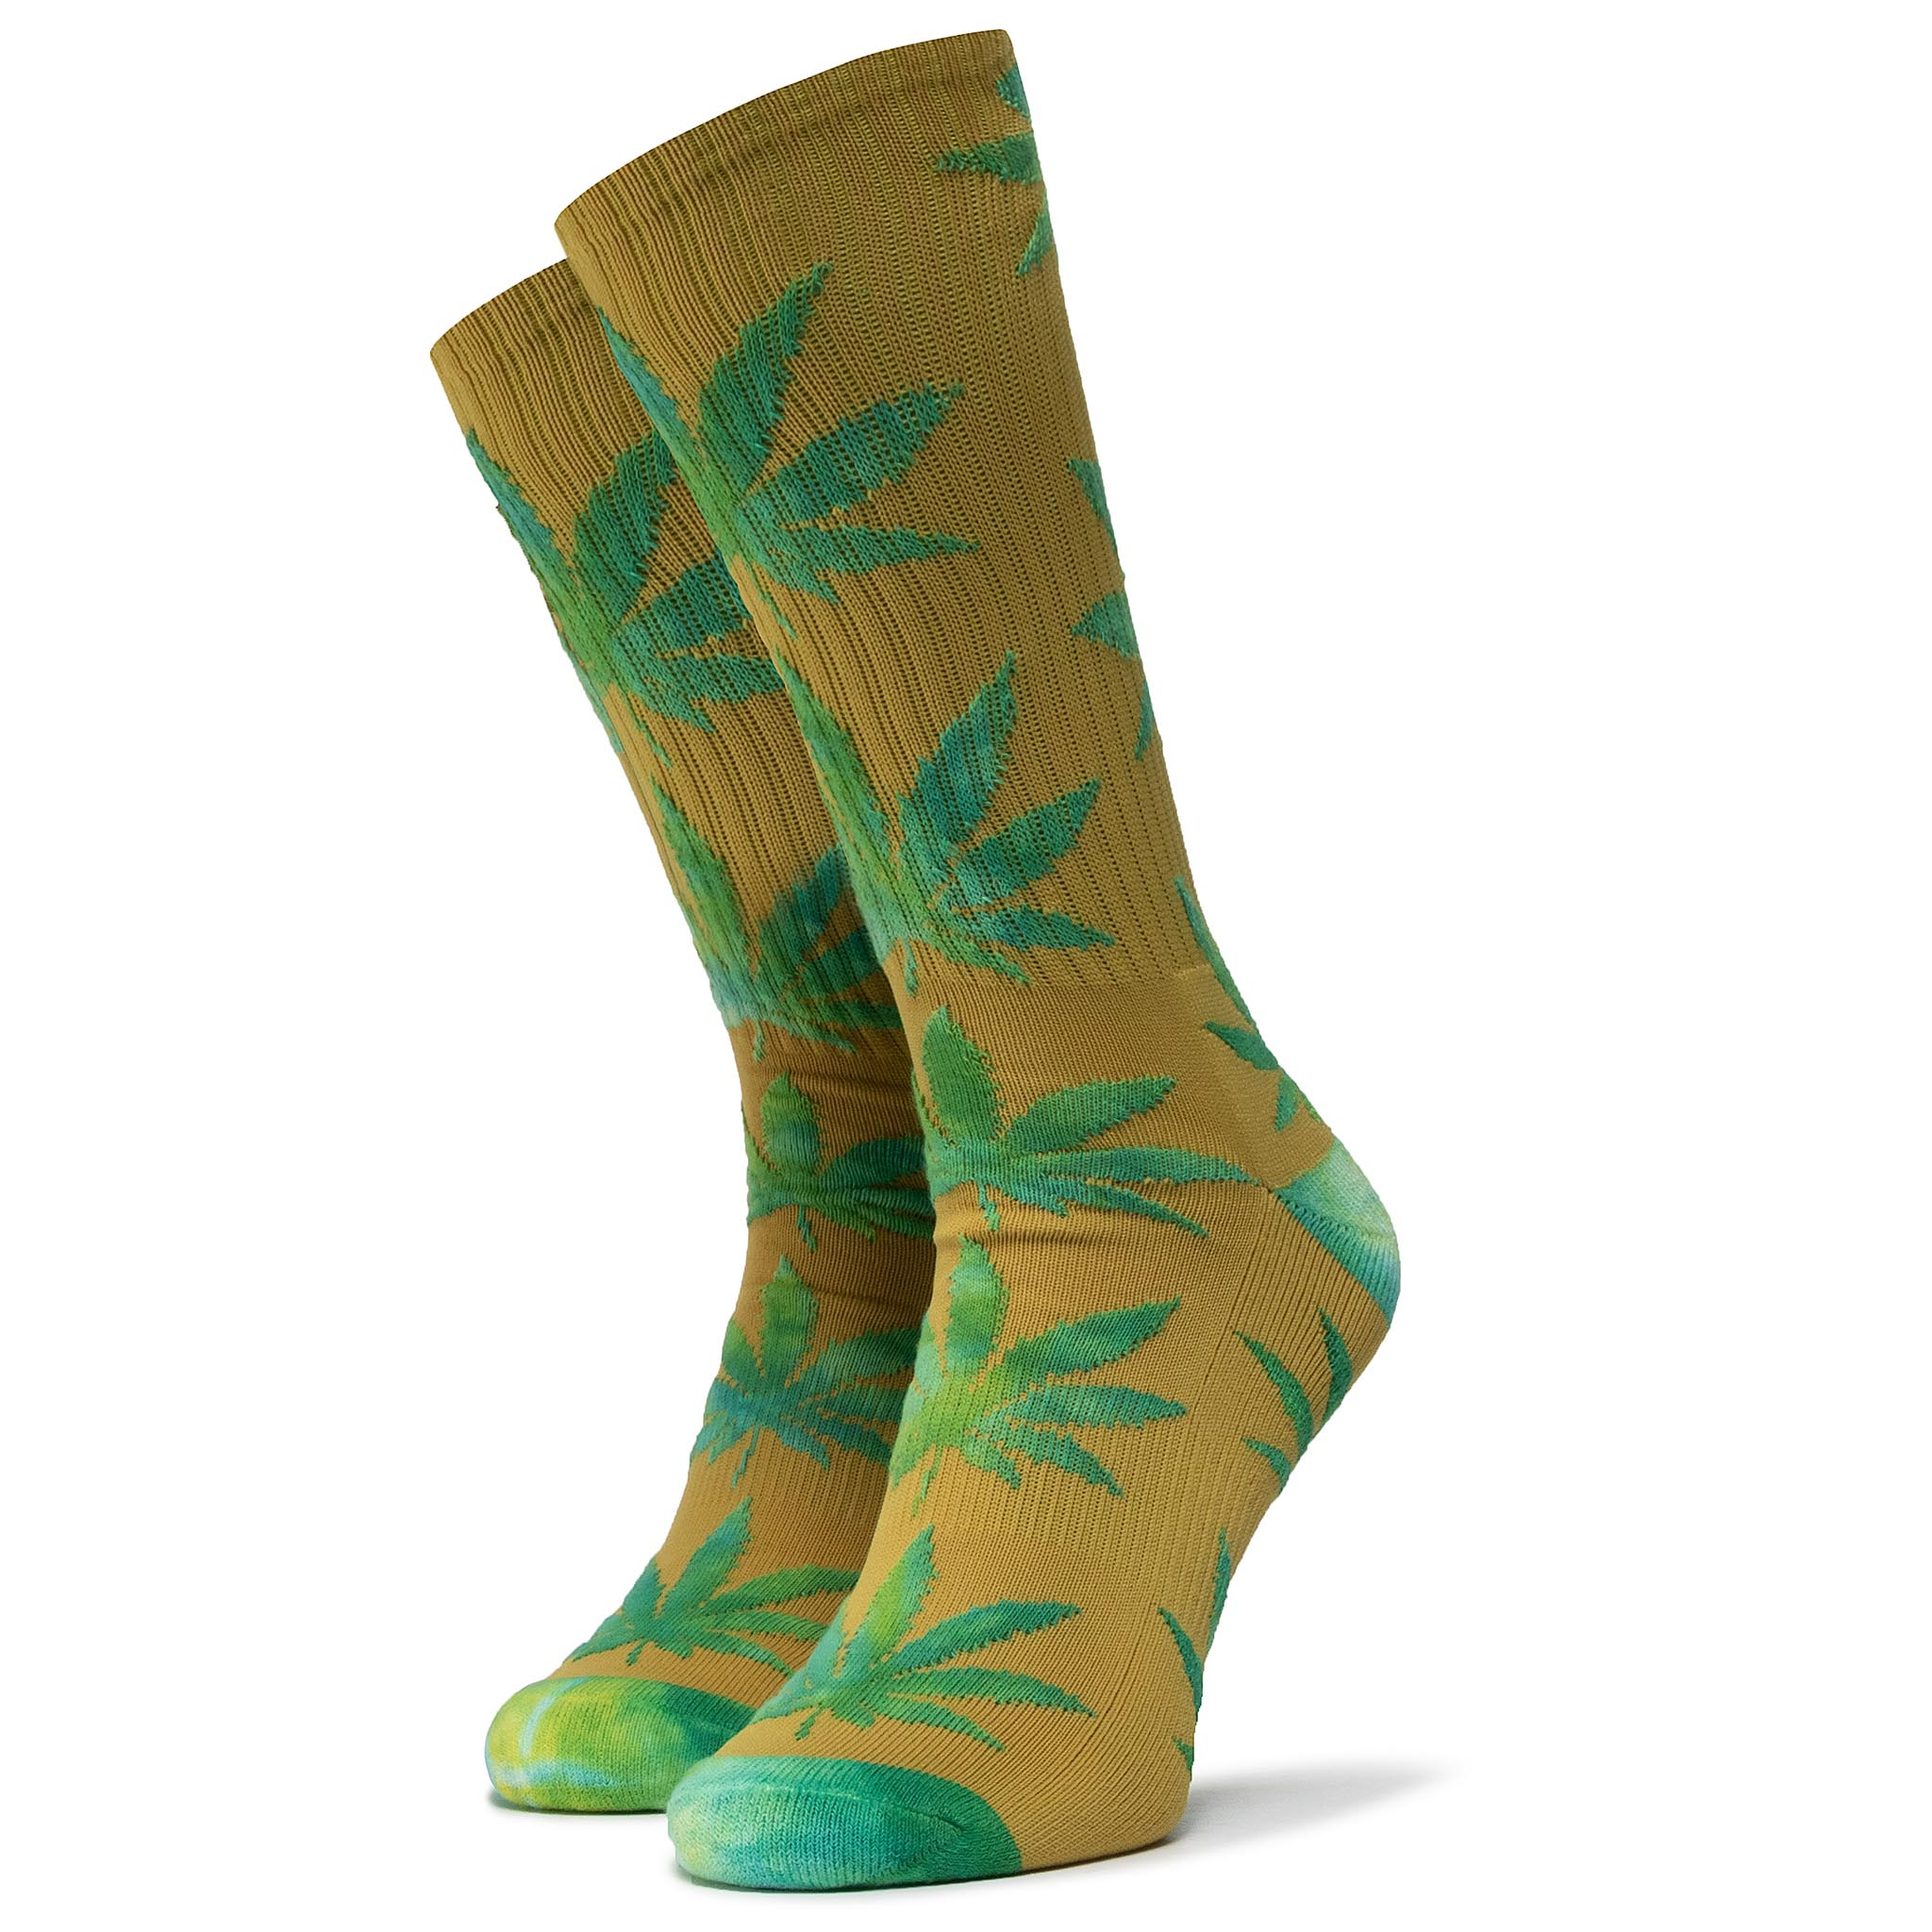 Șosete Înalte Unisex Huf - Plantlife Tiedye Leaves Sock Sk00433 R.Os Golden Spice imagine epantofi.ro 2021